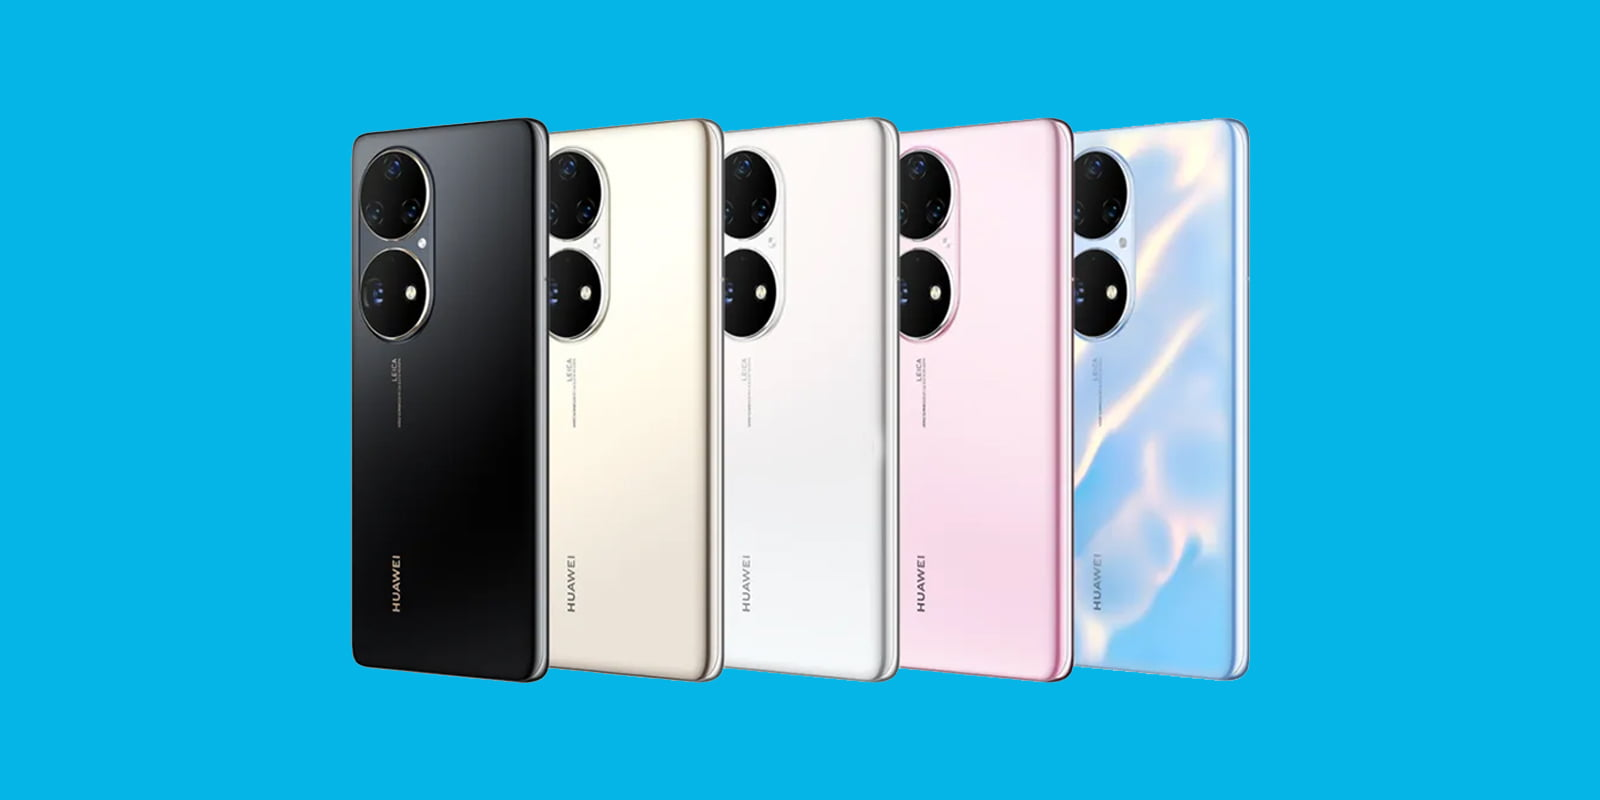 Huawei announces P50 and P50 Pro equipped with Snapdragon 888 and HarmonyOS